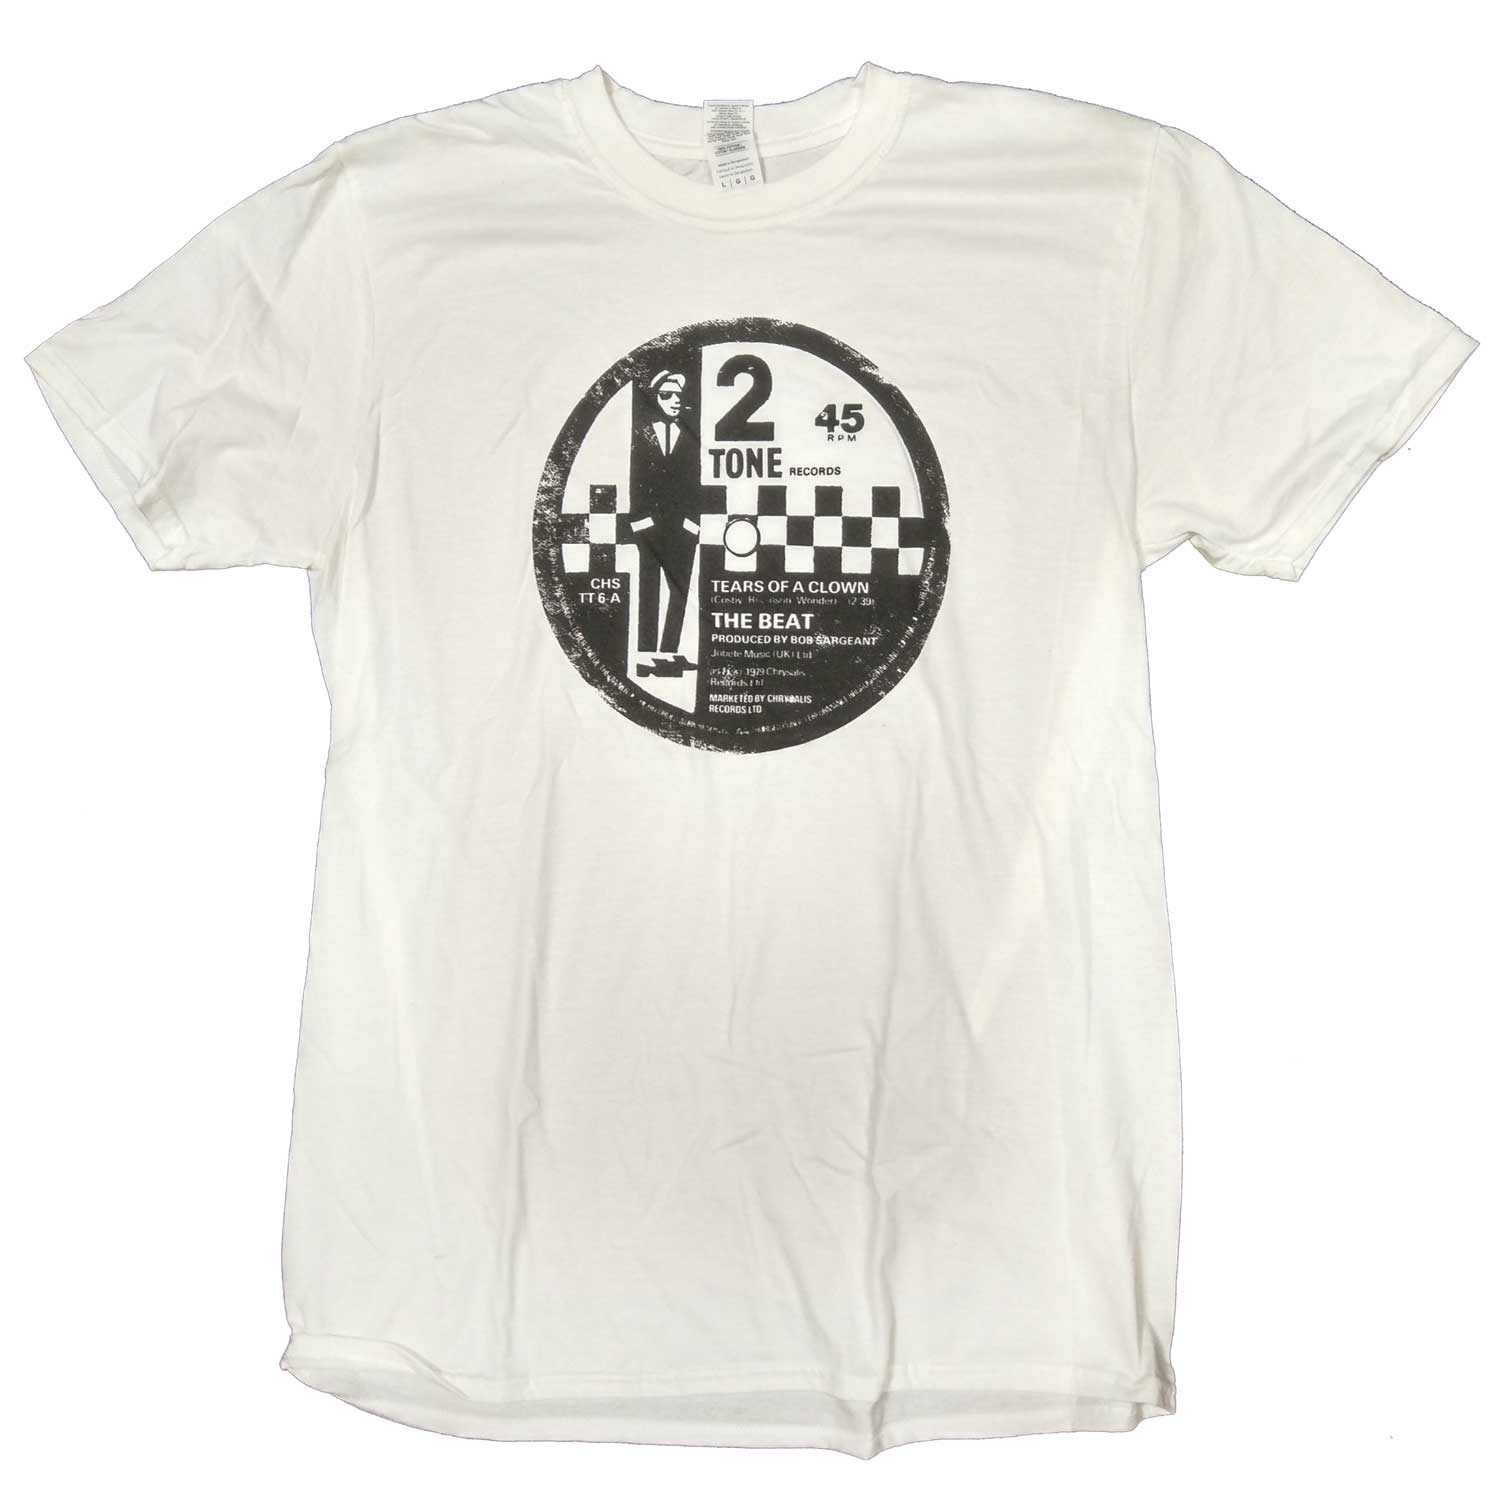 a433cac5d9b The Beat T Shirt - Two Tone Tears Of A Clown Label 100% Official